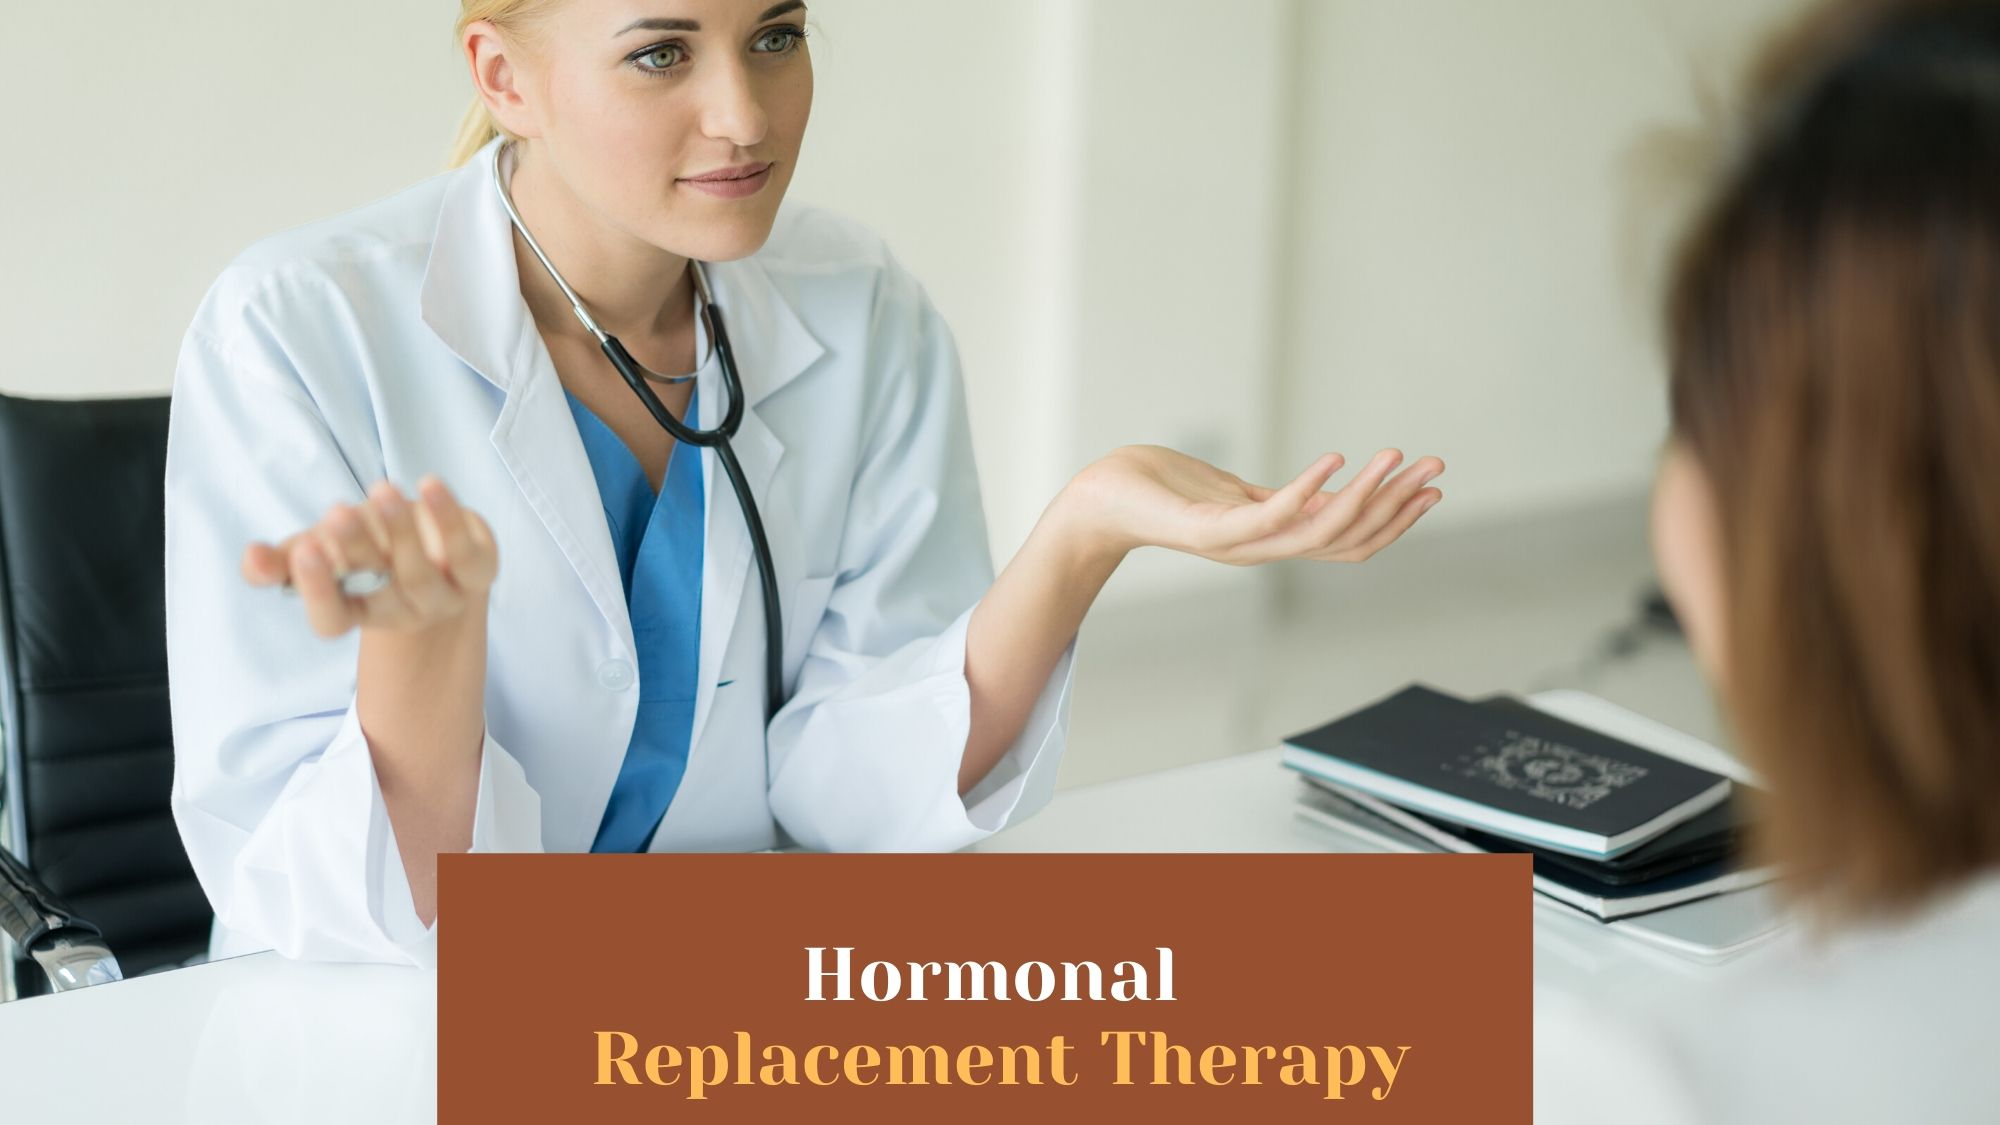 The ABCs of Hormonal Replacement Therapy